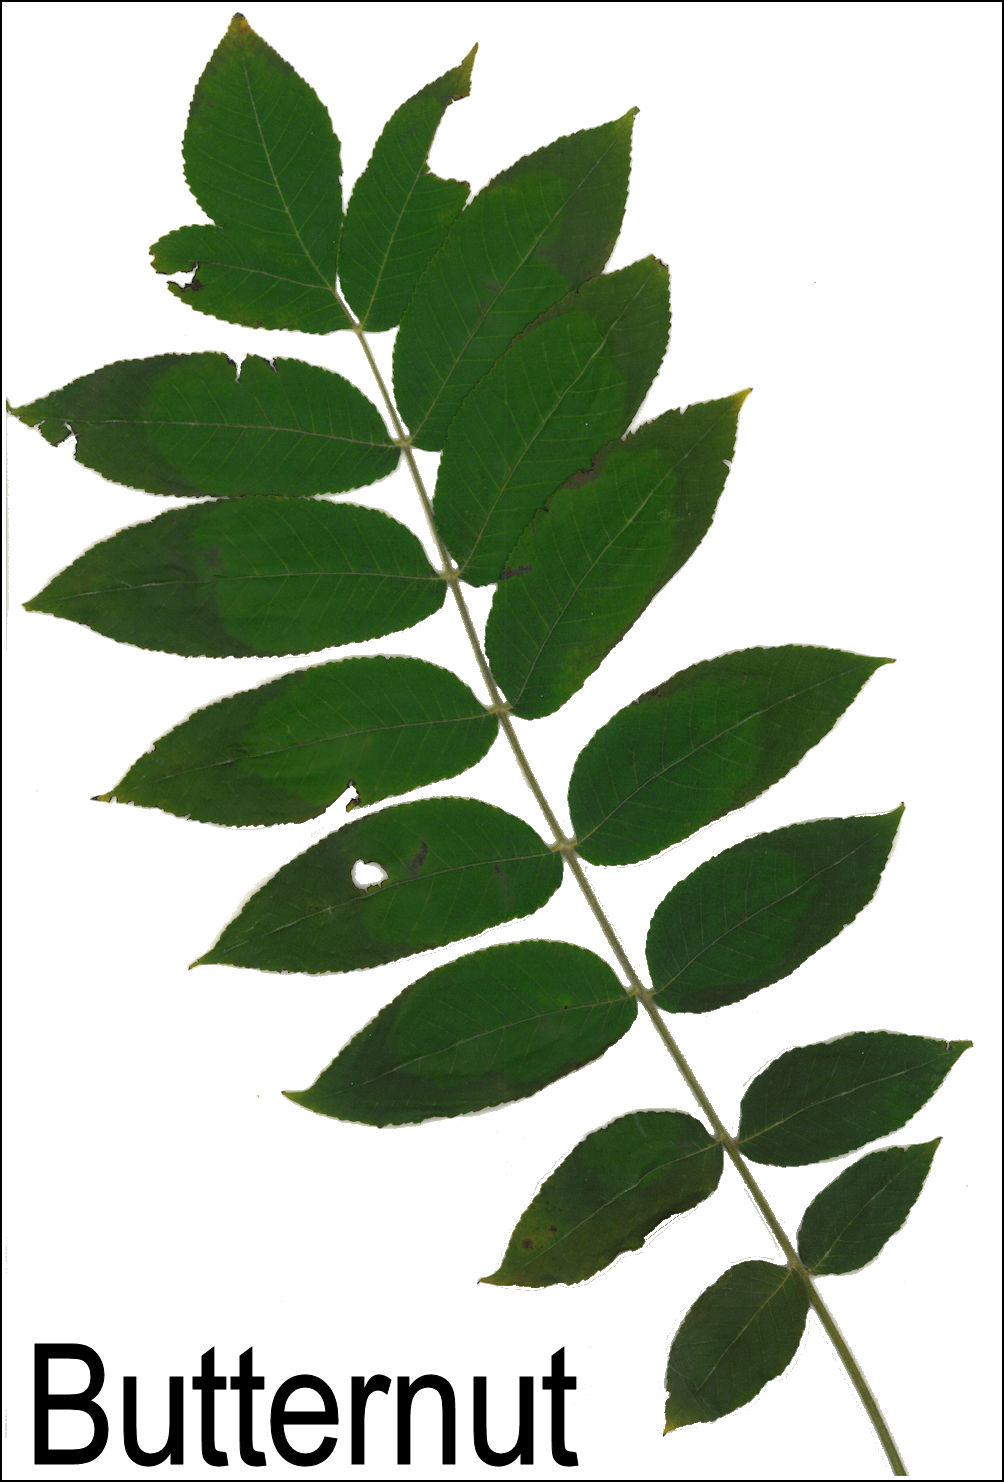 Impressive Are Without Stalks Nearly Central Leafstalk Is Bitternut Pecan Tree Leaves Wilting Pecan Tree Leaves Curling Compound Leaves Are Inches Long Have Leafletmargins Are Tood houzz-02 Pecan Tree Leaves